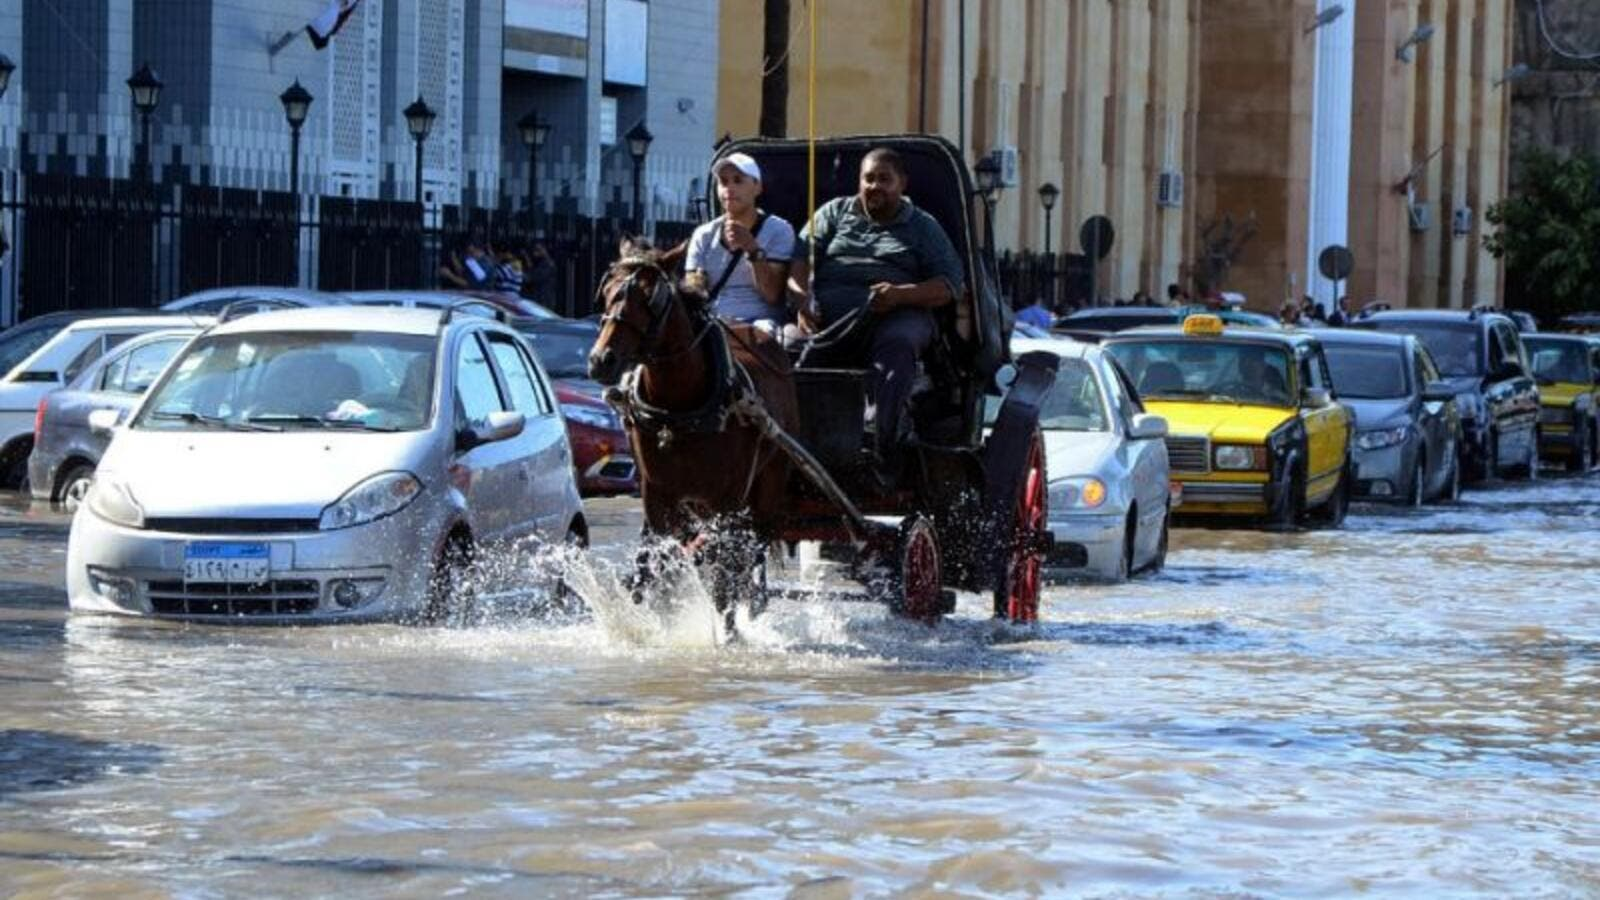 Egyptian men ride a horse carriage in a flooded street in Egypt's northern coastal city of Alexandria, following heavy rains, on October 25, 2015. (AFP/File)